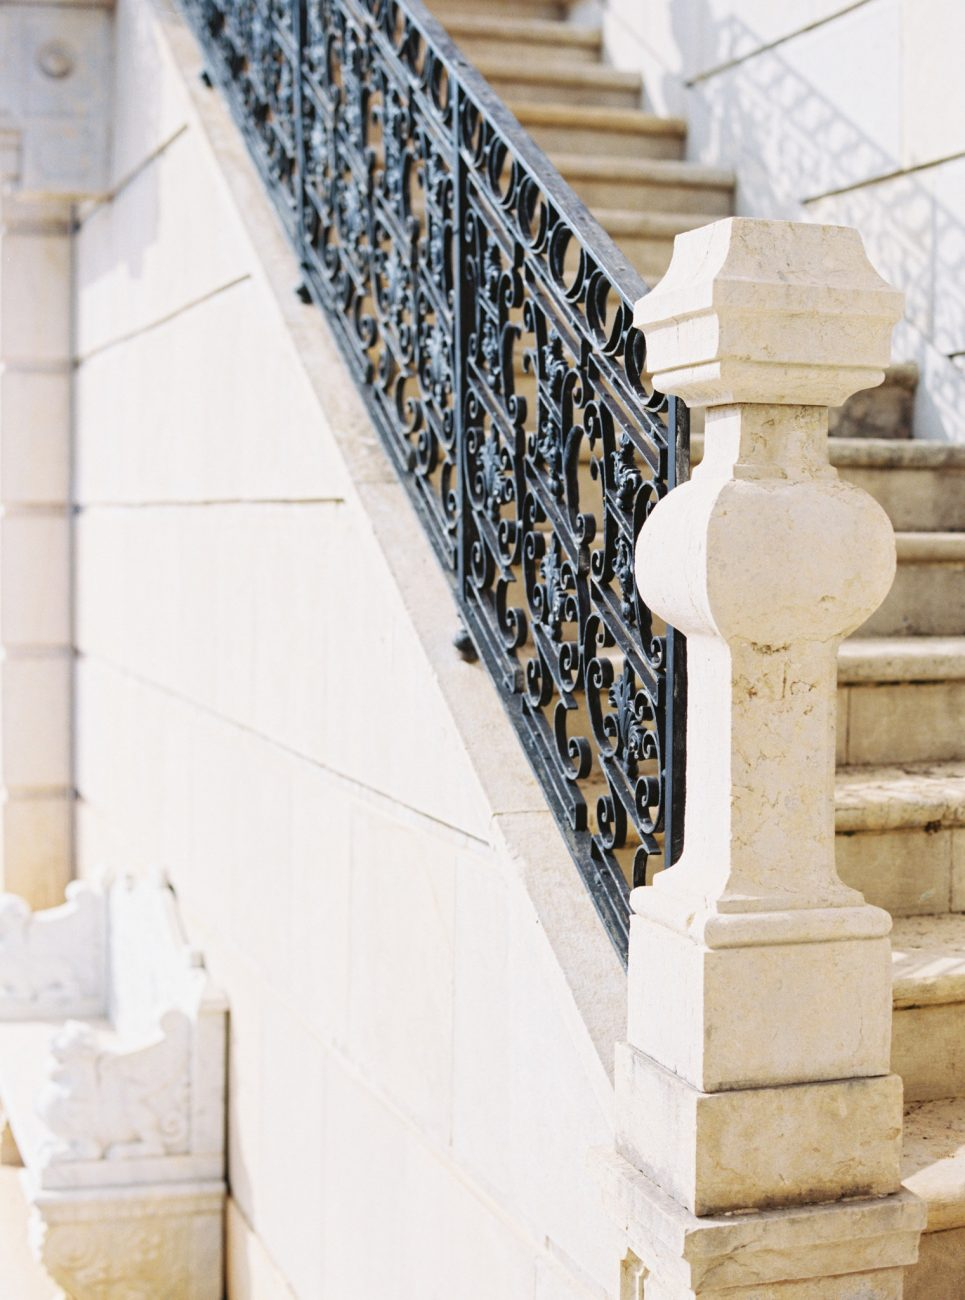 Portuguese palace's stairs